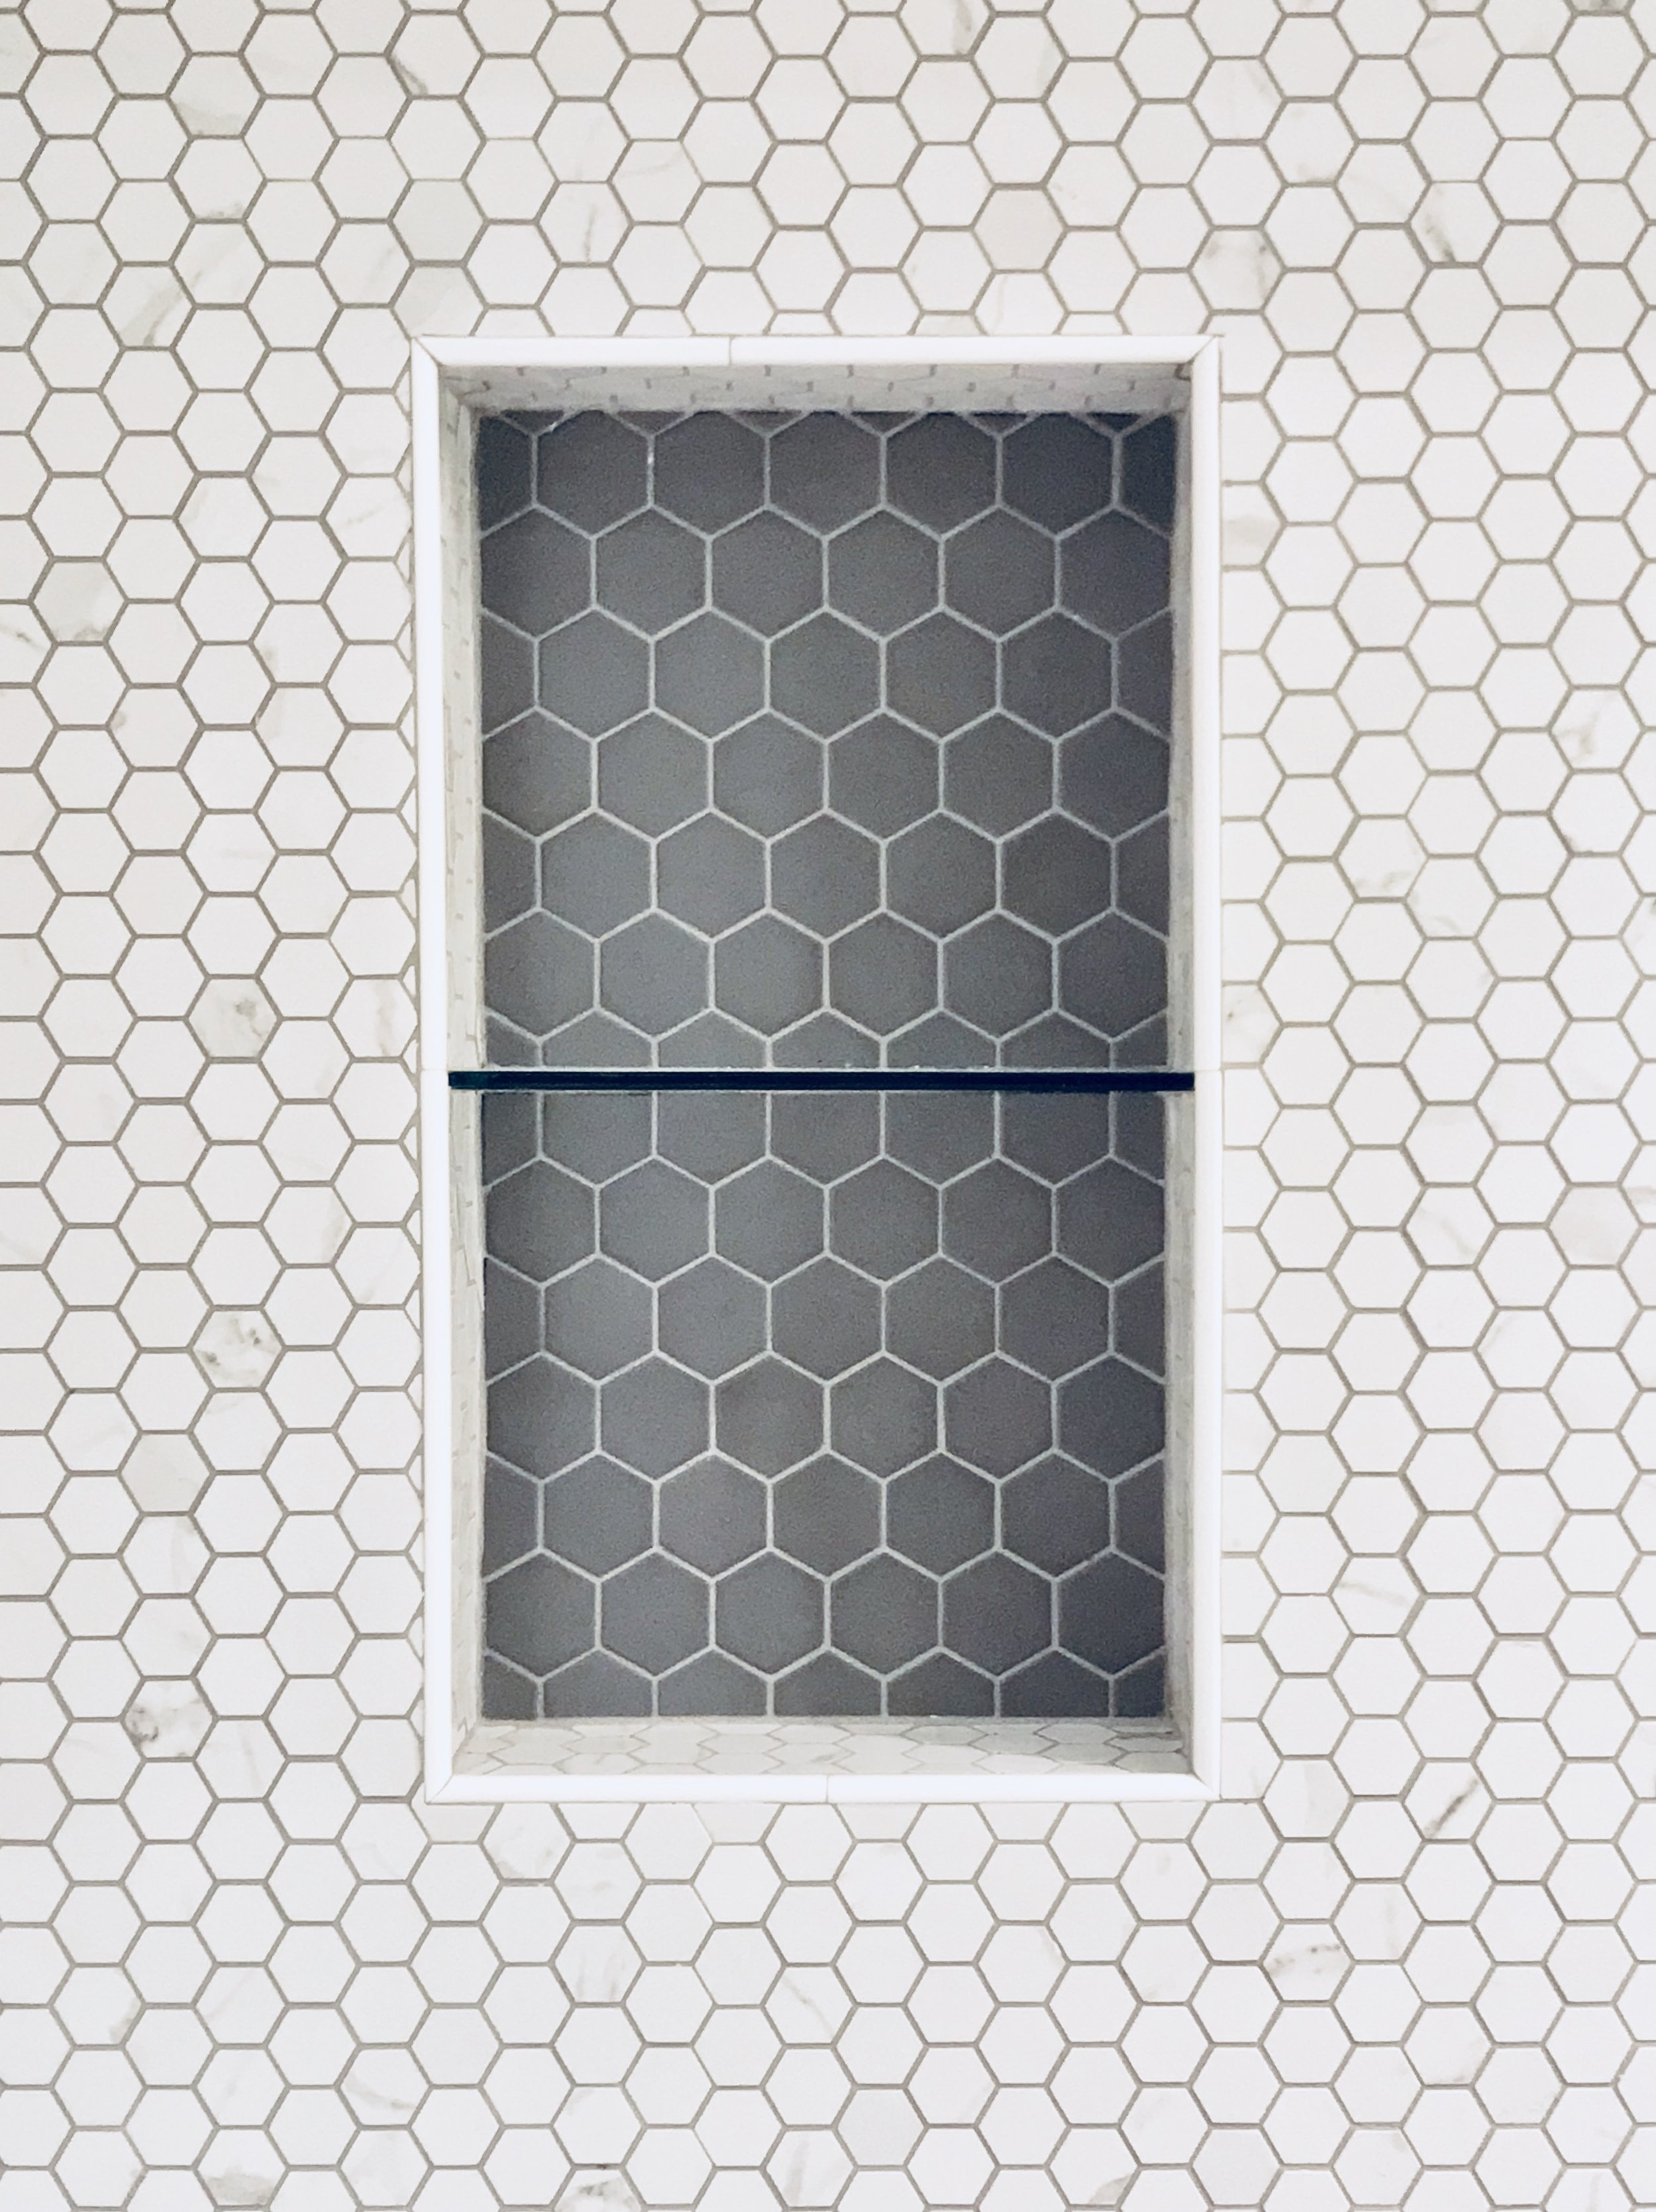 Shower niche with white and gray hexagon tiles